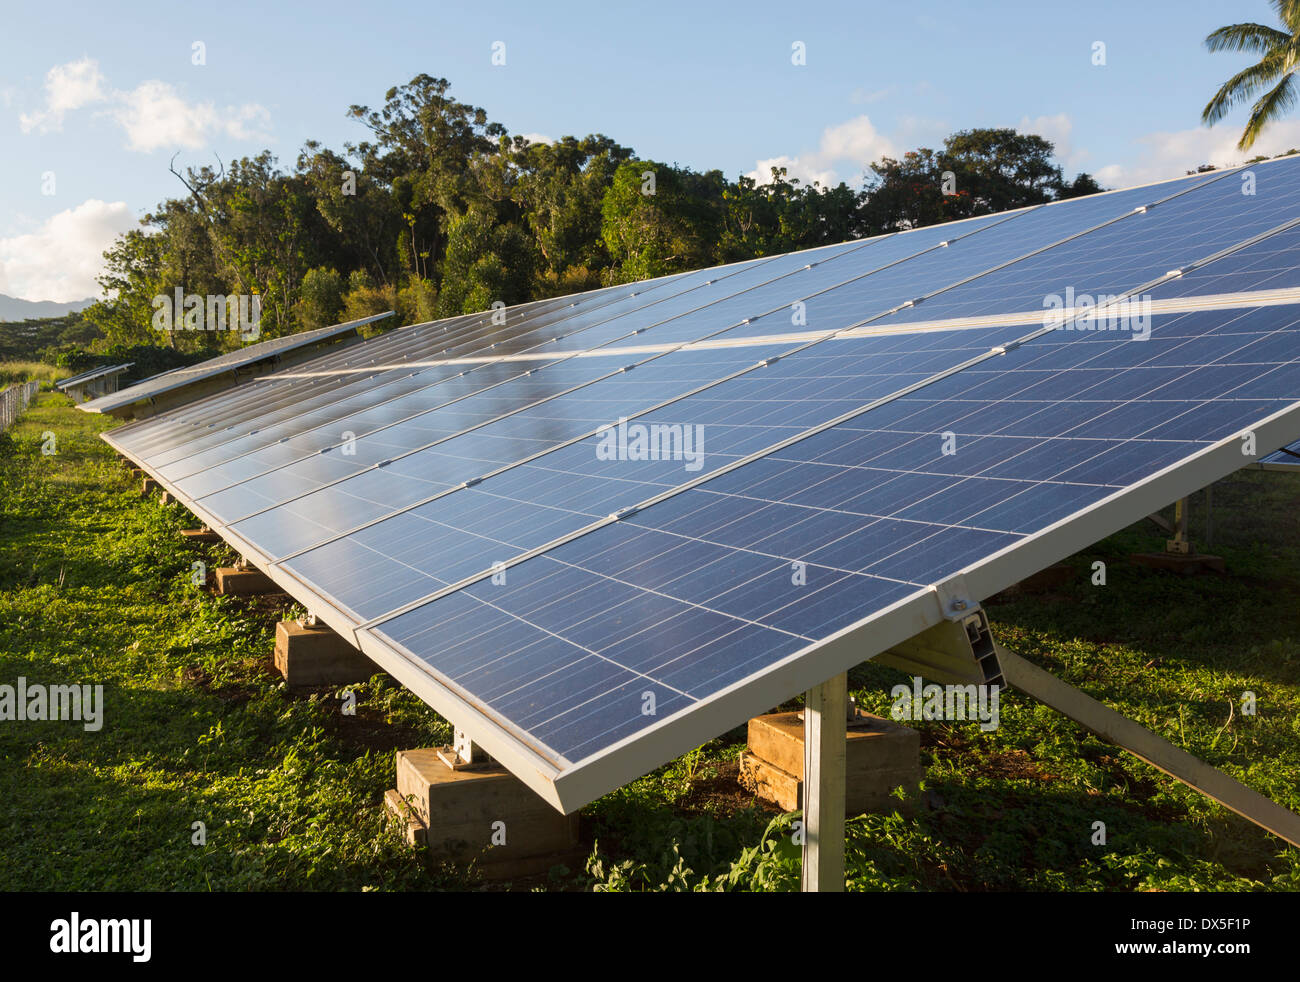 Large industrial solar power panel installation in a tropical environment - renewable energy - Stock Image